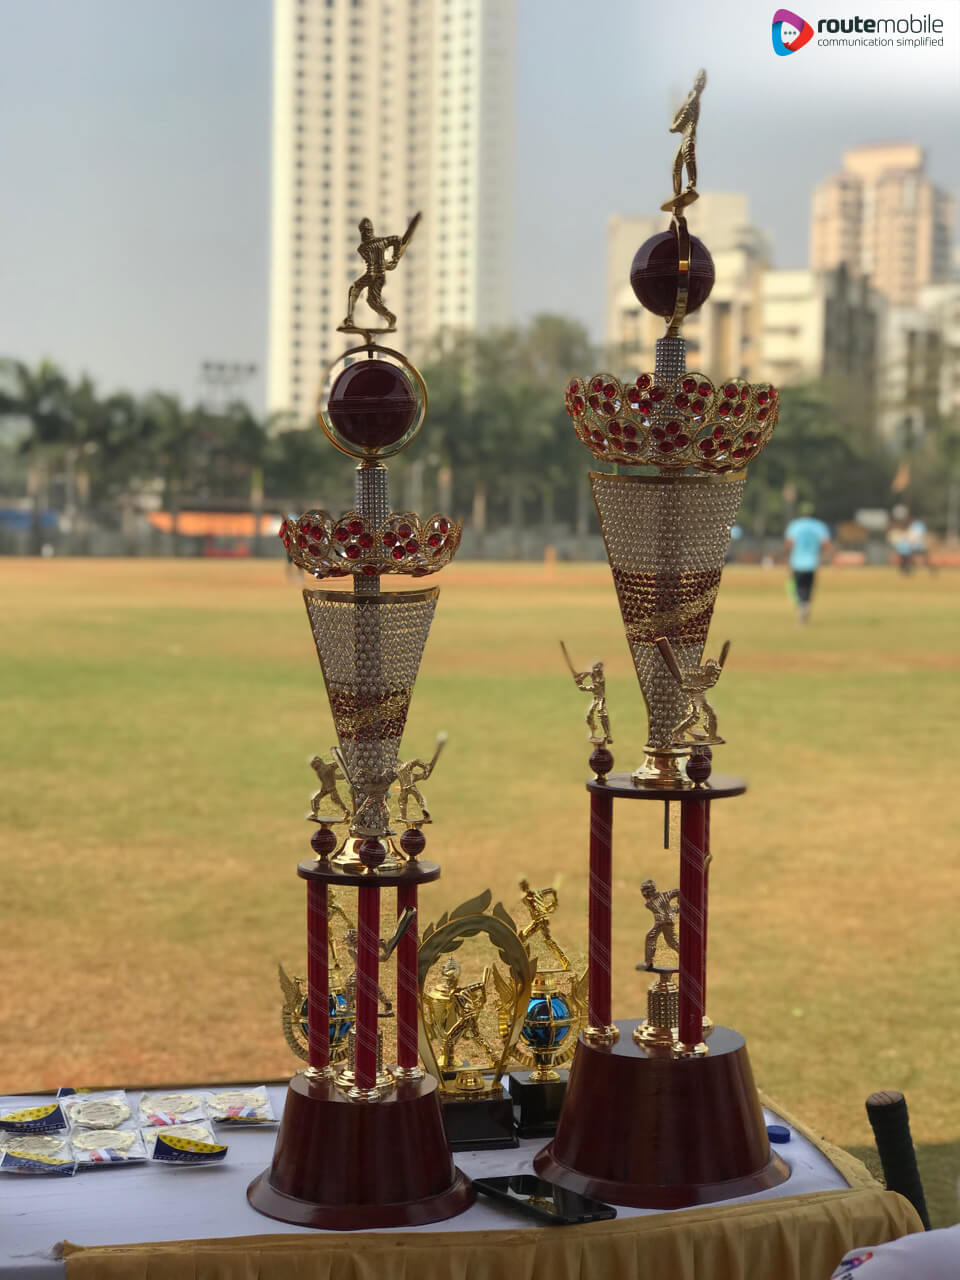 Route Mobile Premier League Trophies